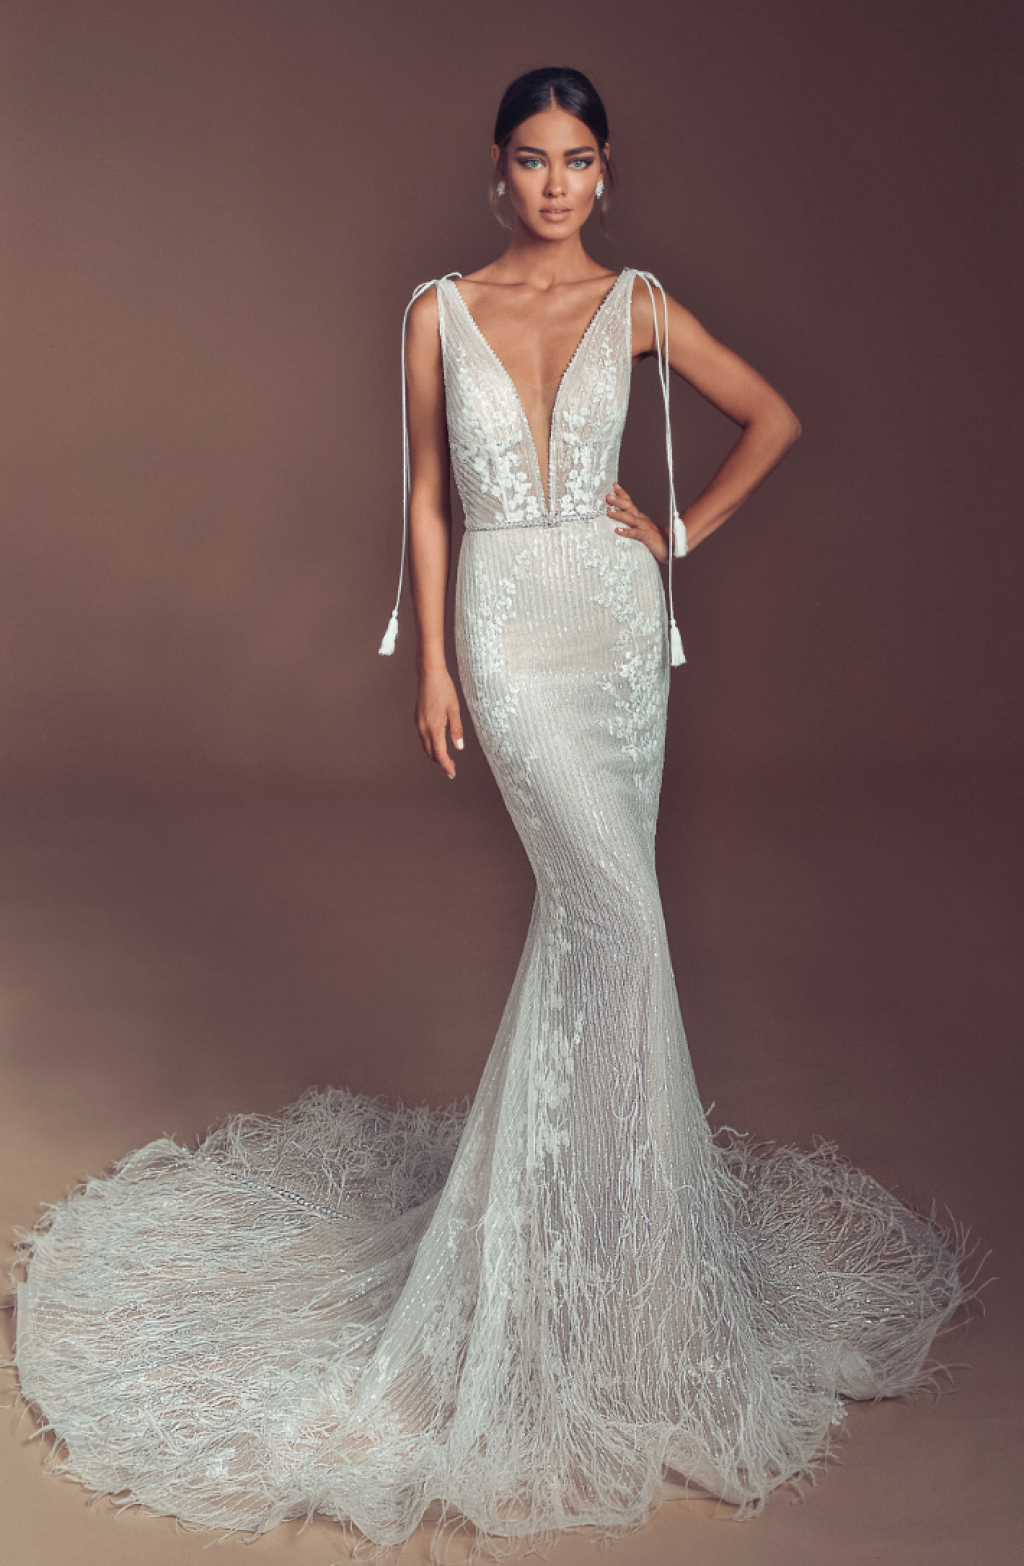 Couture mermaid wedding dress with ostrich feather skirt and train